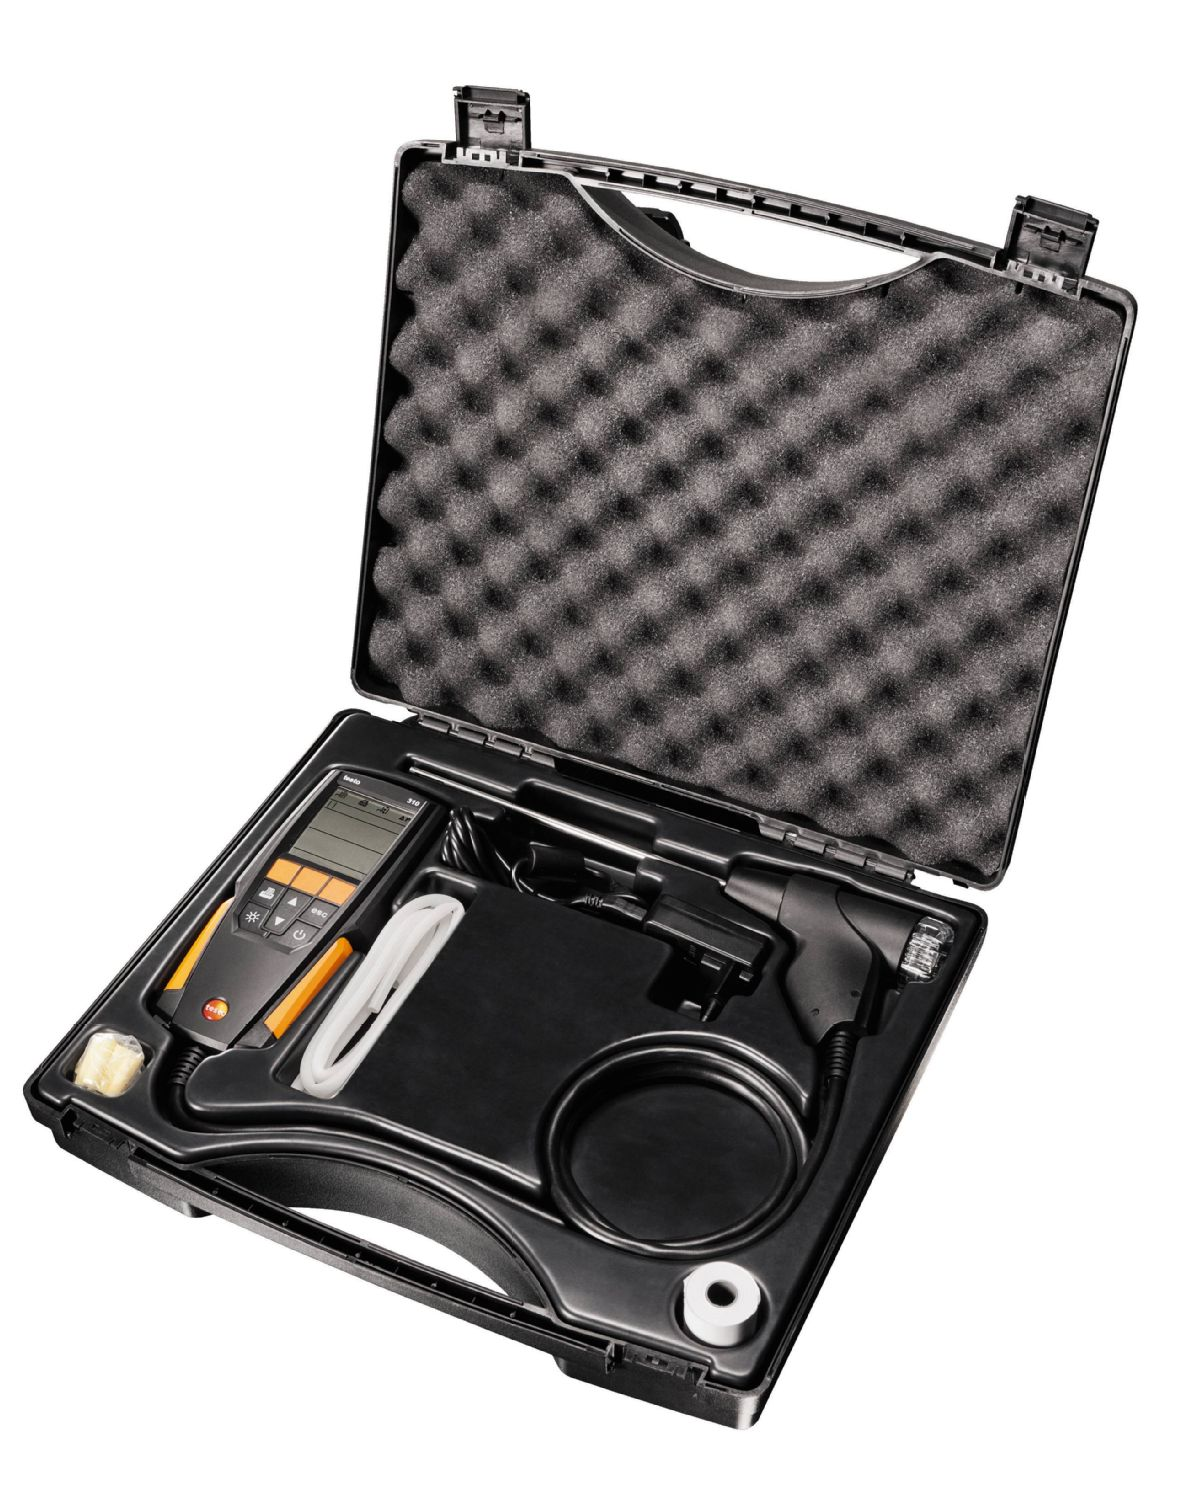 testo 310 set without printer